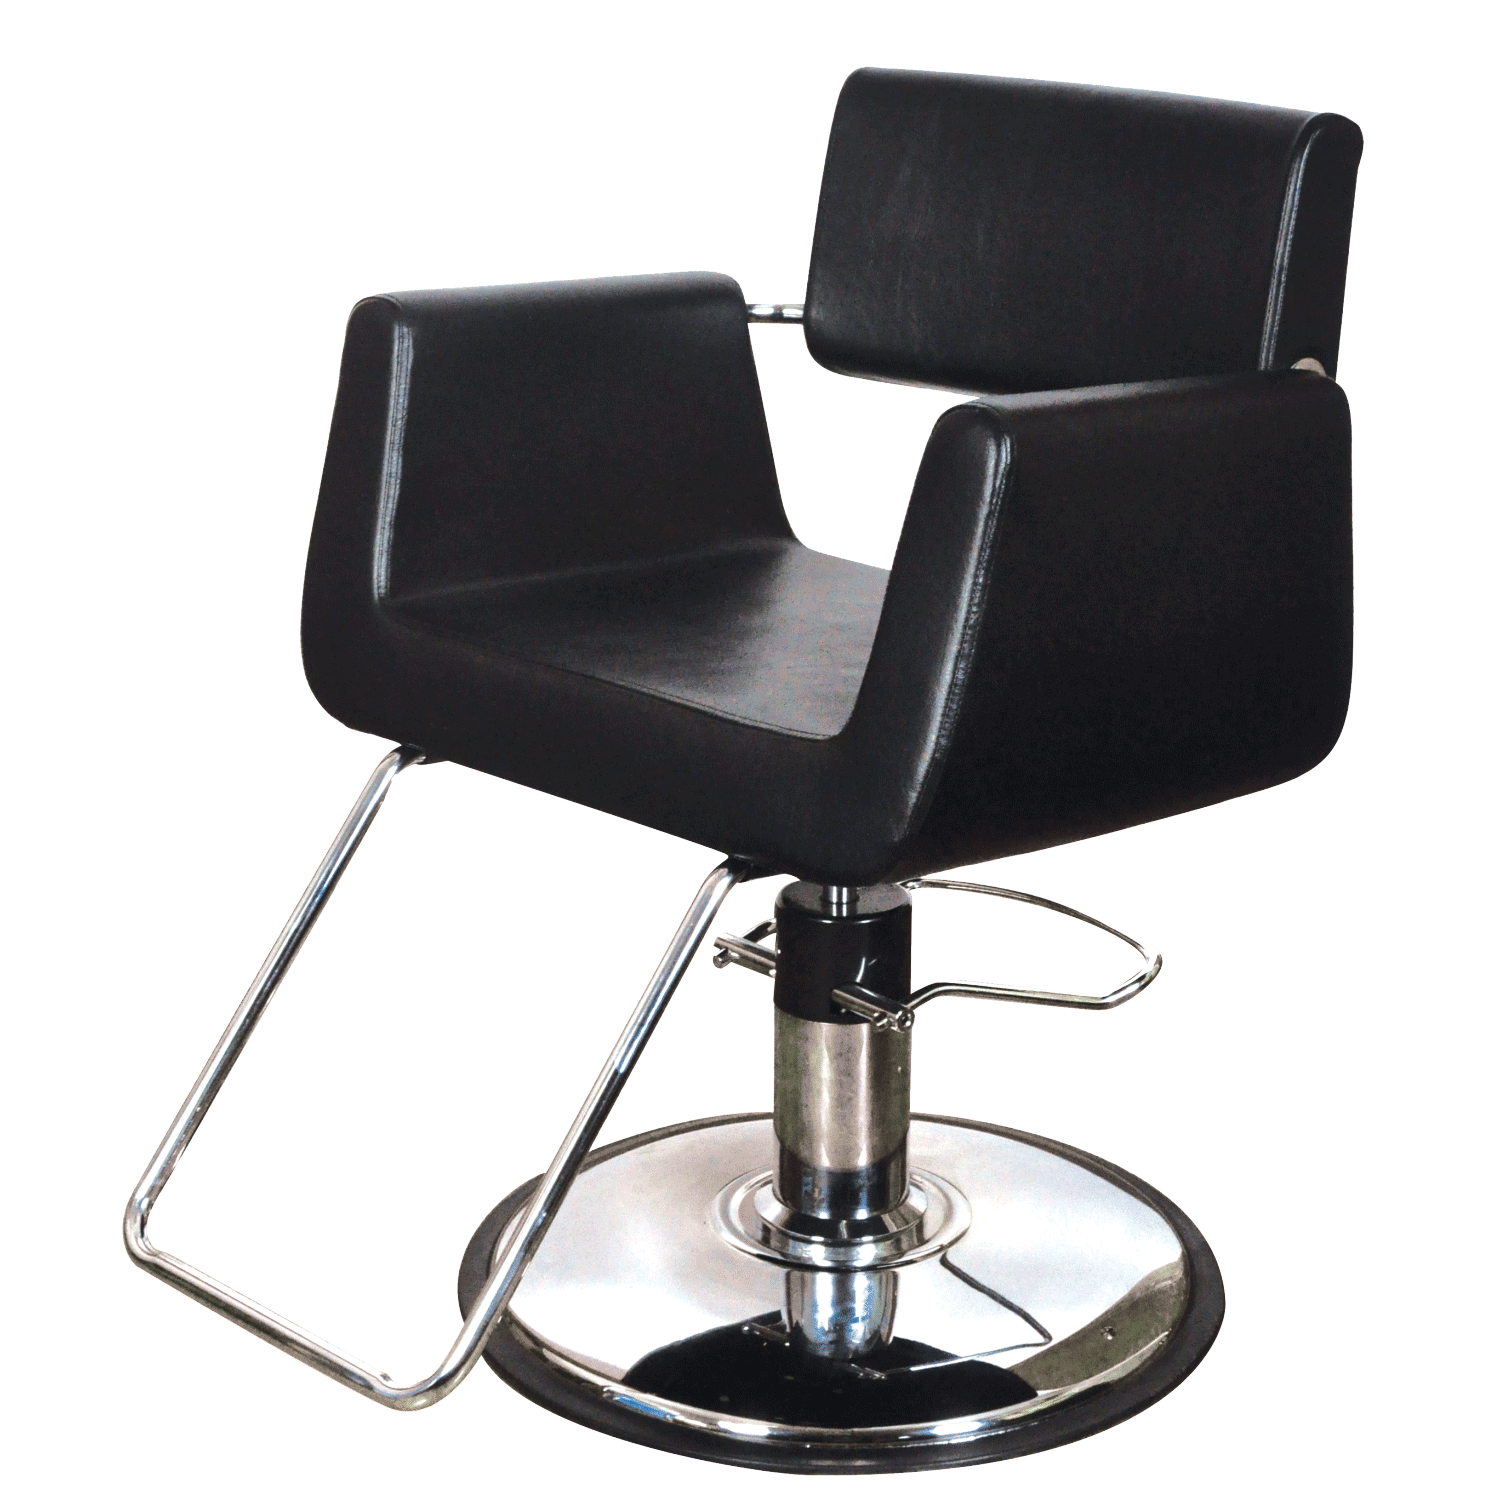 Brooklyn Styling Chair at CosmoProf Equipment